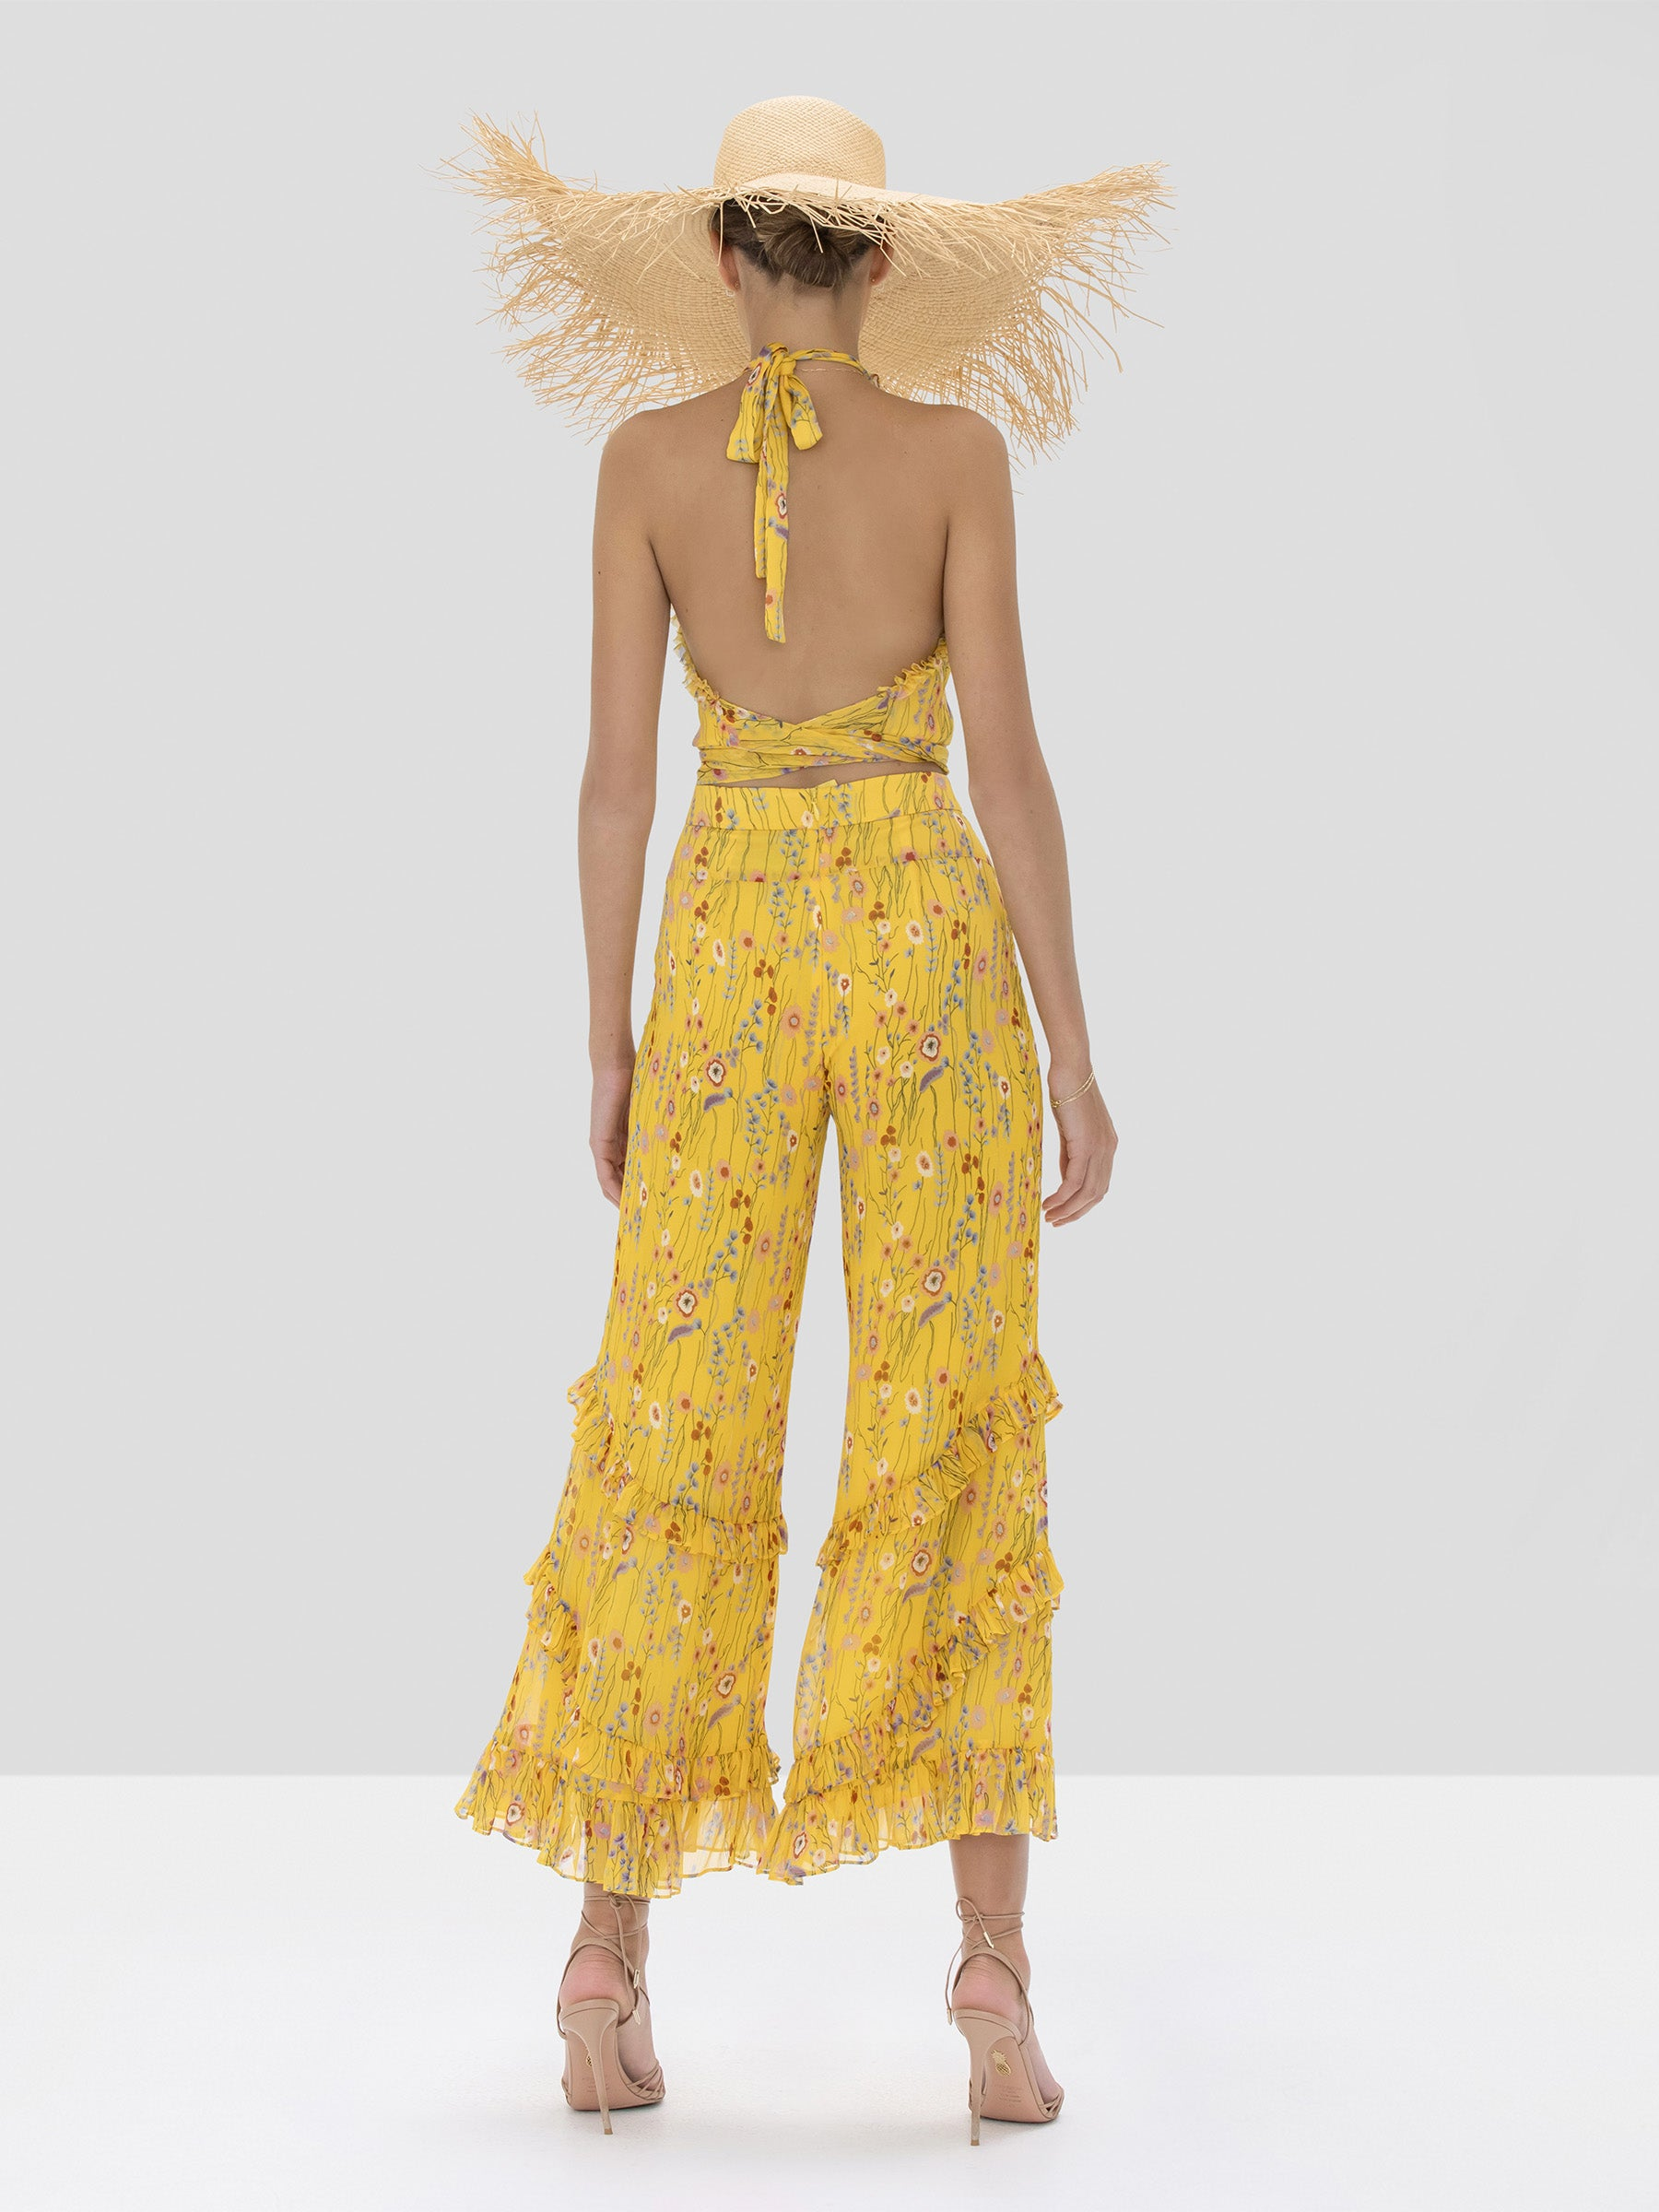 Alexis Balbina Top and Faizel Pant in Sunrise Bouquet from Spring Summer 2020 - Rear View